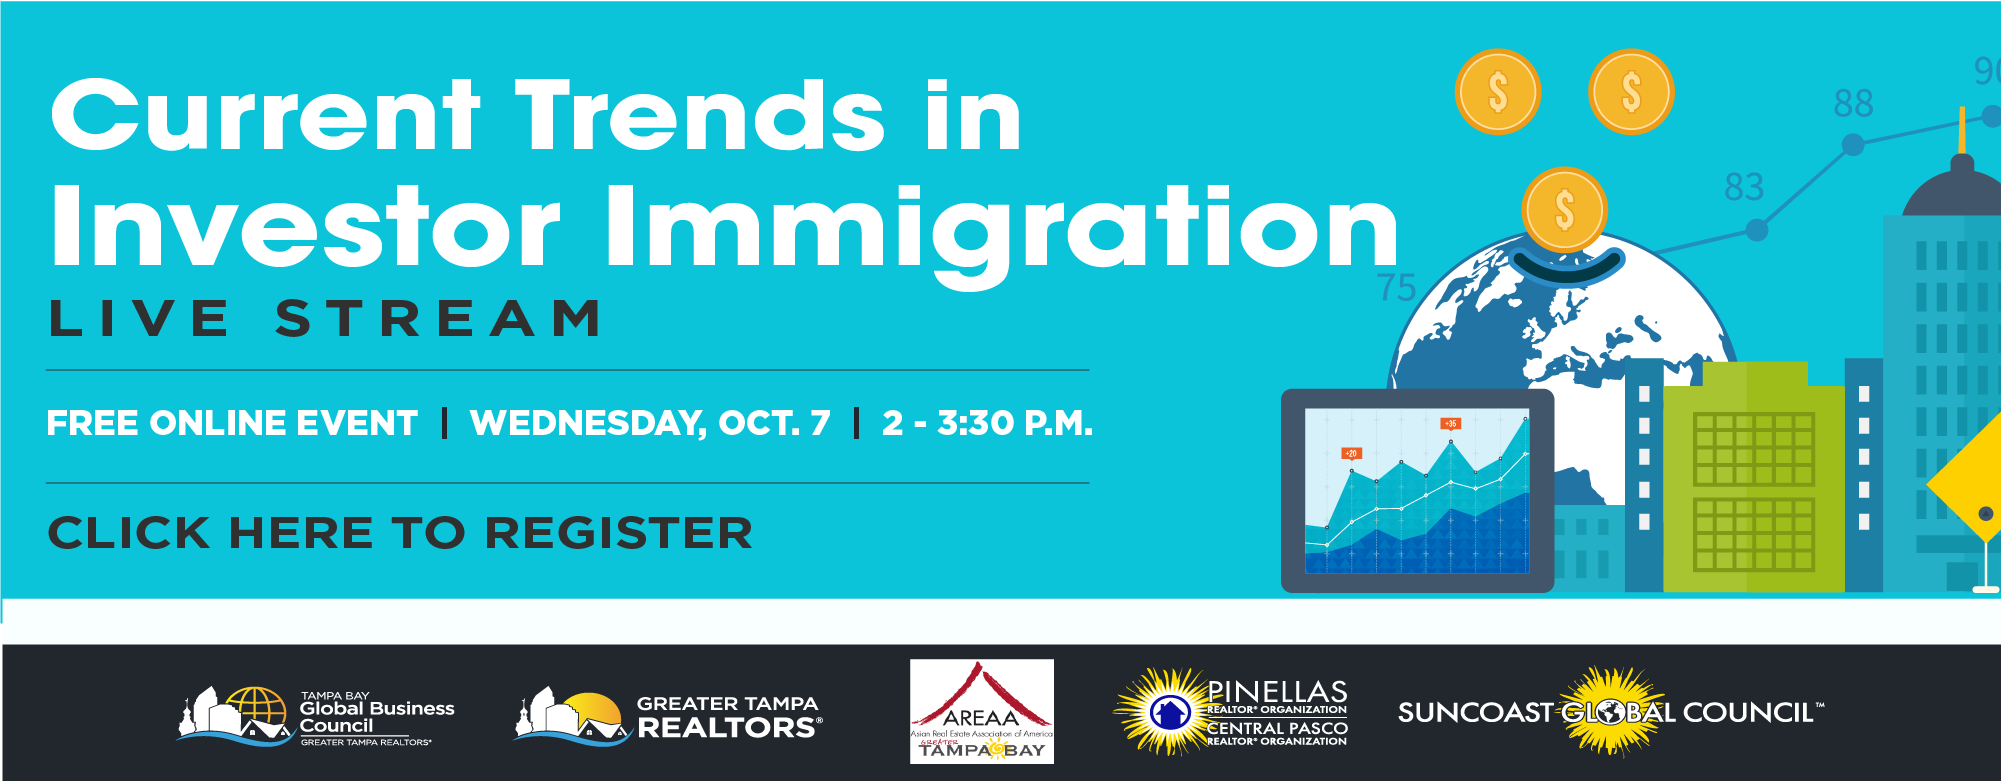 Current Trends in Investor Immigration Live Stream, Free Online Event, Wednesday, Oct. 7 from 2 to 3:30 p.m. Click the image to register